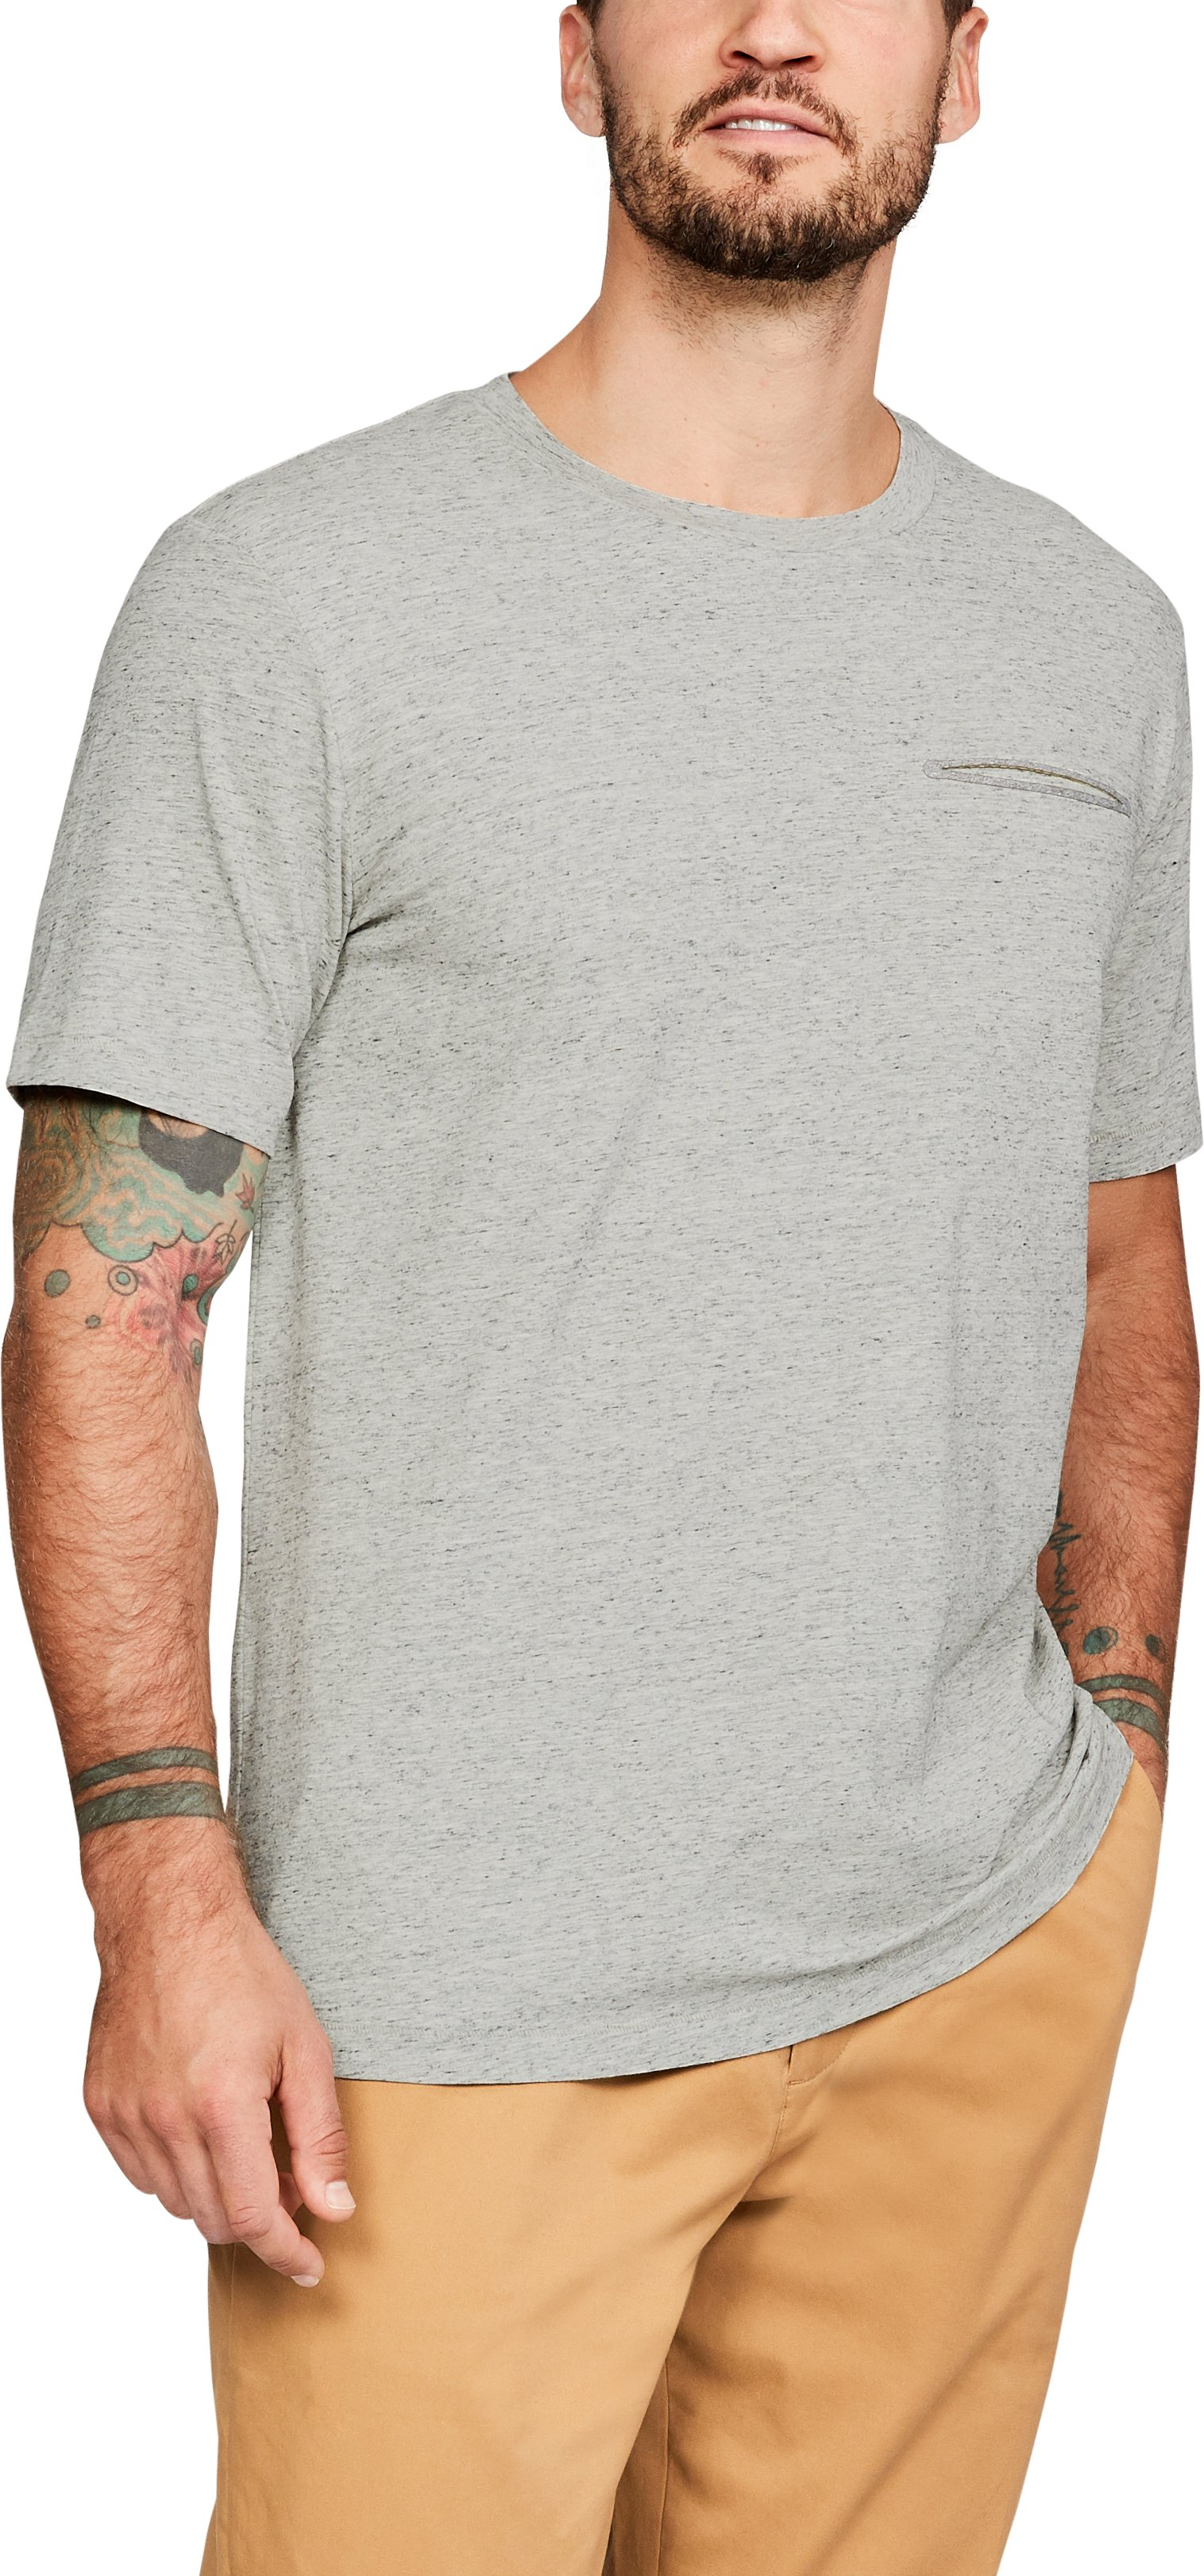 UASW Prime Crew Tee, UAS Speckled Heather Grey, zoomed